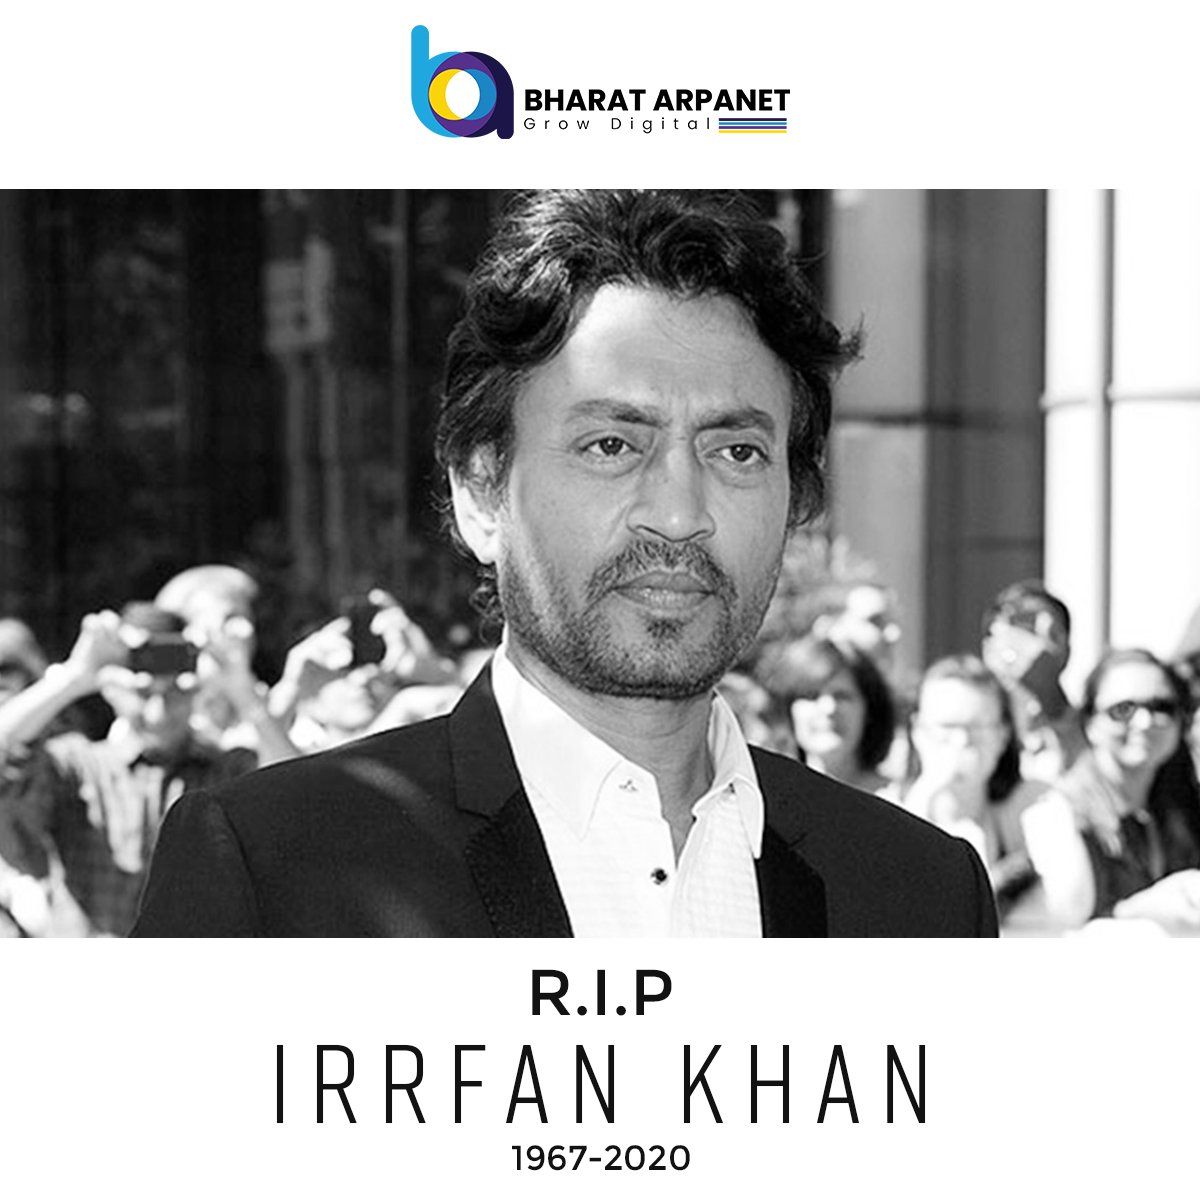 RIP legend. You will always be in our hearts  #IrrfanKhan #RIPlegend #RIPIrrfanKhan #AngreziMedium https://t.co/DO3yD8KmAG